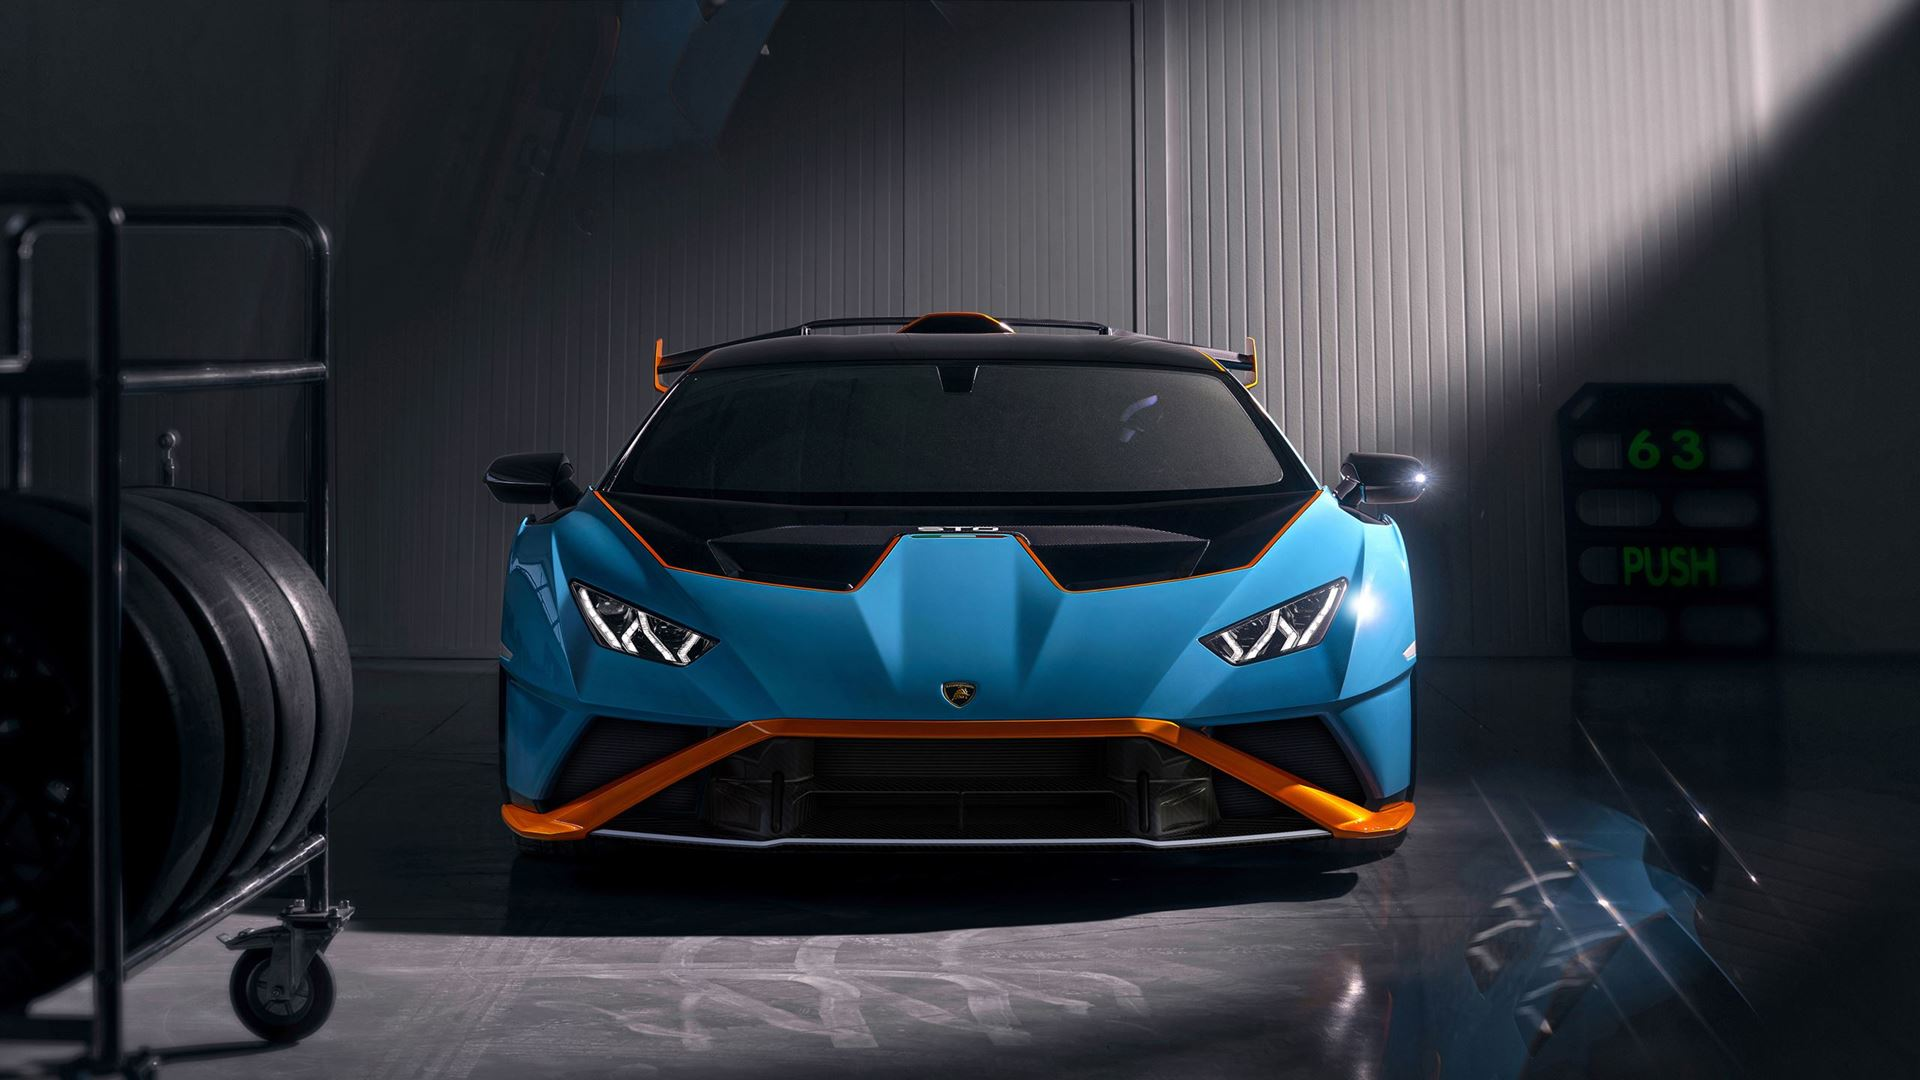 Racetrack to road: the new Lamborghini Huracán STO - Image 3